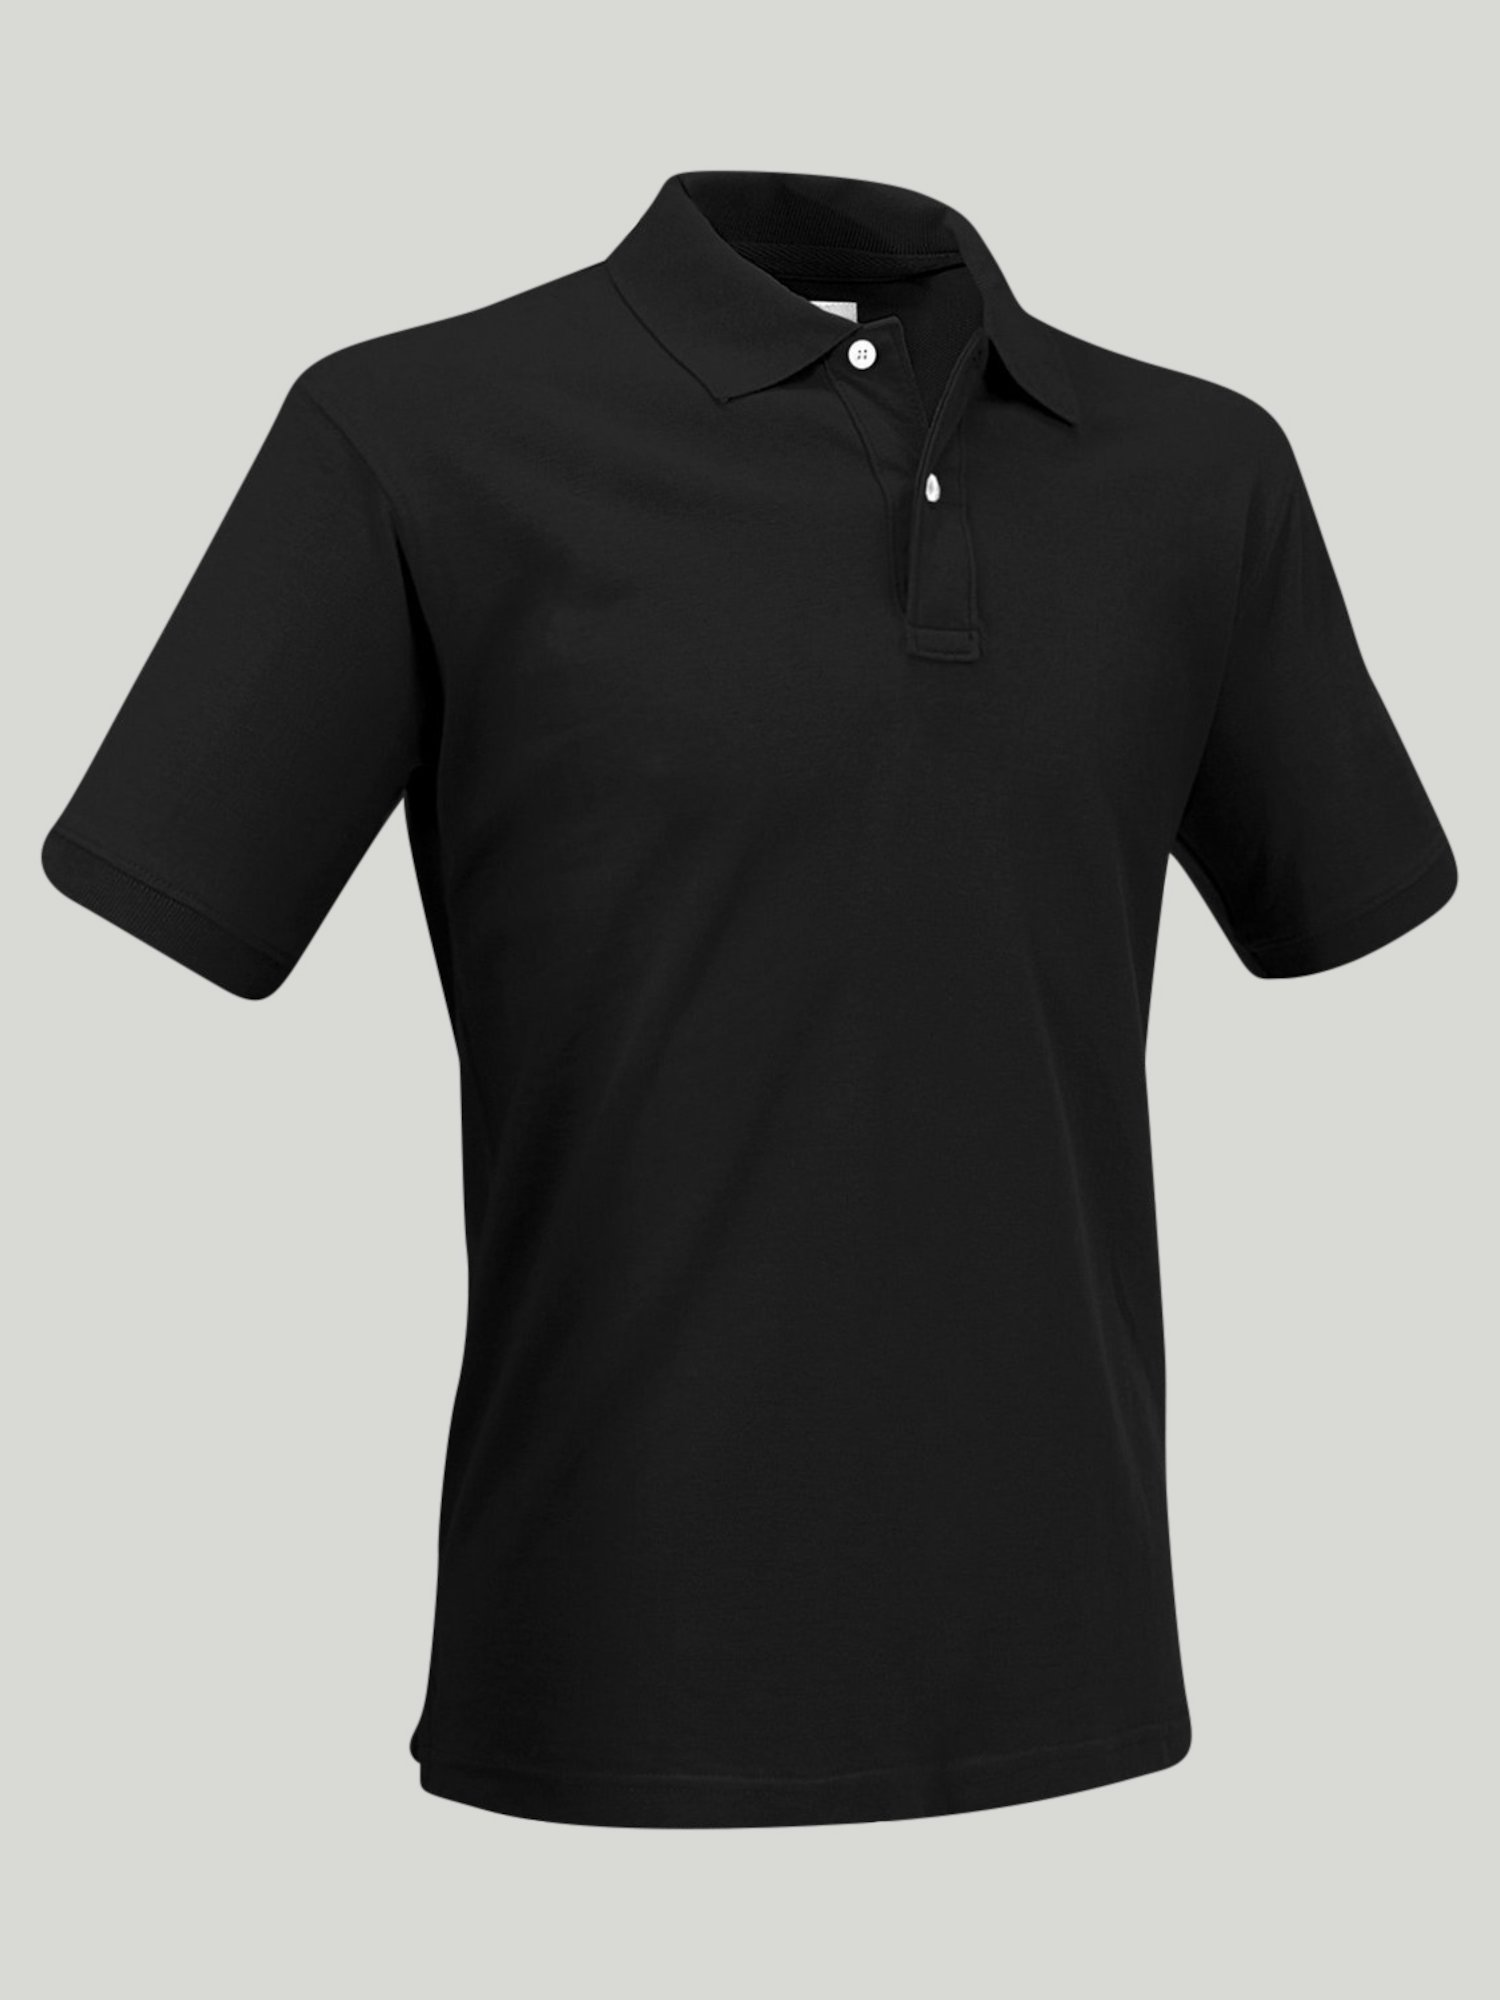 POLO COLEMAN SS NEW - Black